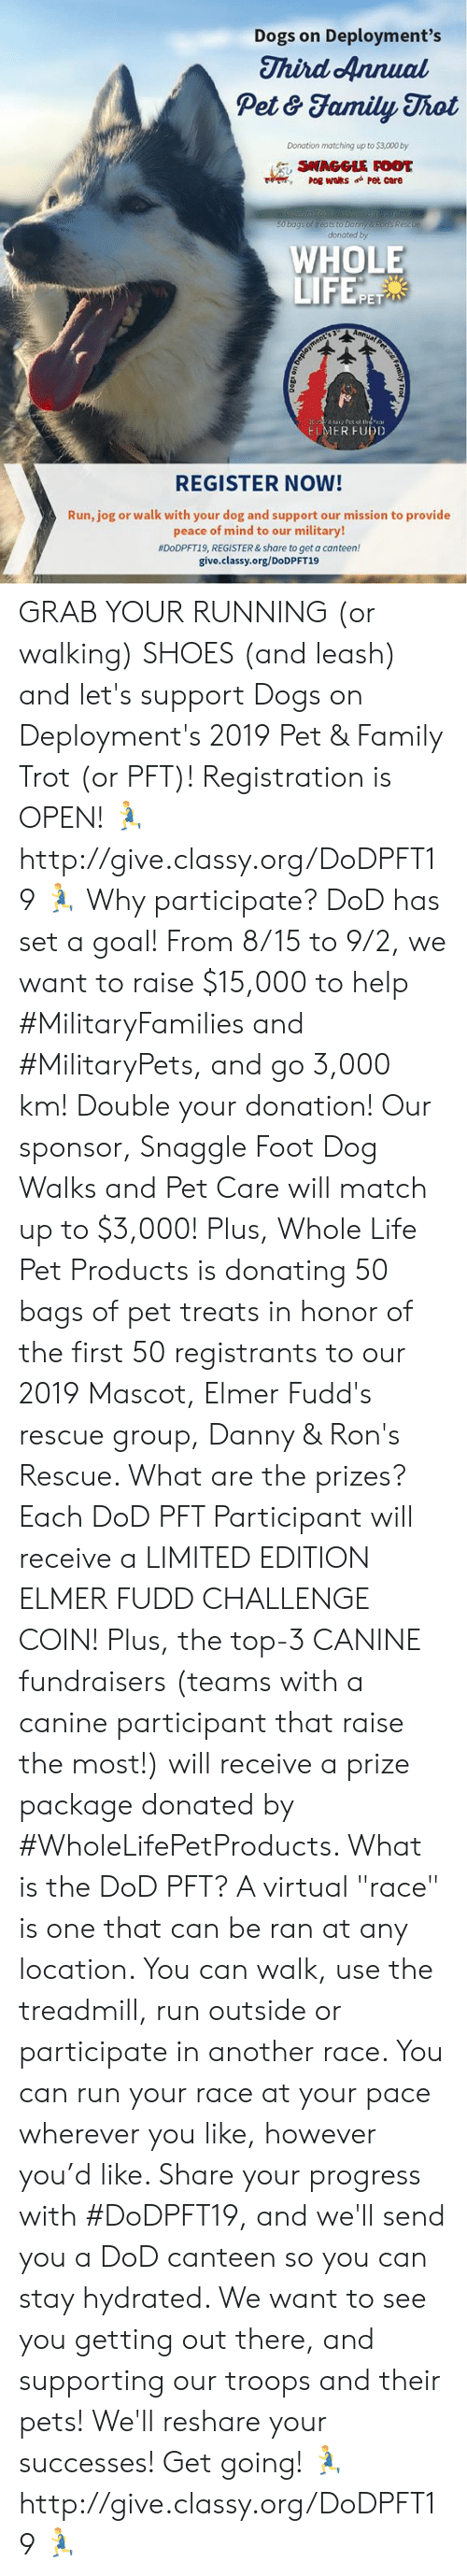 """Dogs, Family, and Life: Dogs on Deployment's  Third Annual  Pet & Family Thot  Donation matching up to $3,000 by  SNAGGLE FOOT  pog waks Pet care  50 bags of treats to bonny & Ron's Rescue  donated by  WHOLE  LIFE.F  PET  Annual Pet ae A  20-2tar Pet of thYear  FIMER FUDD  REGISTER NOW!  Run, jog or walk with your dog and support our mission to provide  peace of mind to our military!  #D0DPFT19, REGISTER &share to get a canteen!  give.classy.org/DoDPFT19 GRAB YOUR RUNNING (or walking) SHOES (and leash) and let's support Dogs on Deployment's 2019 Pet & Family Trot (or PFT)! Registration is OPEN!   🏃 http://give.classy.org/DoDPFT19 🏃  Why participate? DoD has set a goal! From 8/15 to 9/2, we want to raise $15,000 to help #MilitaryFamilies and #MilitaryPets, and go 3,000 km!   Double your donation! Our sponsor, Snaggle Foot Dog Walks and Pet Care will match up to $3,000! Plus, Whole Life Pet Products is donating 50 bags of pet treats in honor of the first 50 registrants to our 2019 Mascot, Elmer Fudd's rescue group, Danny & Ron's Rescue.   What are the prizes? Each DoD PFT Participant will receive a LIMITED EDITION ELMER FUDD CHALLENGE COIN! Plus, the top-3 CANINE fundraisers (teams with a canine participant that raise the most!) will receive a prize package donated by #WholeLifePetProducts.   What is the DoD PFT? A virtual """"race"""" is one that can be ran at any location. You can walk, use the treadmill, run outside or participate in another race.  You can run your race at your pace wherever you like, however you'd like.   Share your progress with #DoDPFT19, and we'll send you a DoD canteen so you can stay hydrated. We want to see you getting out there, and supporting our troops and their pets! We'll reshare your successes!  Get going! 🏃 http://give.classy.org/DoDPFT19 🏃"""